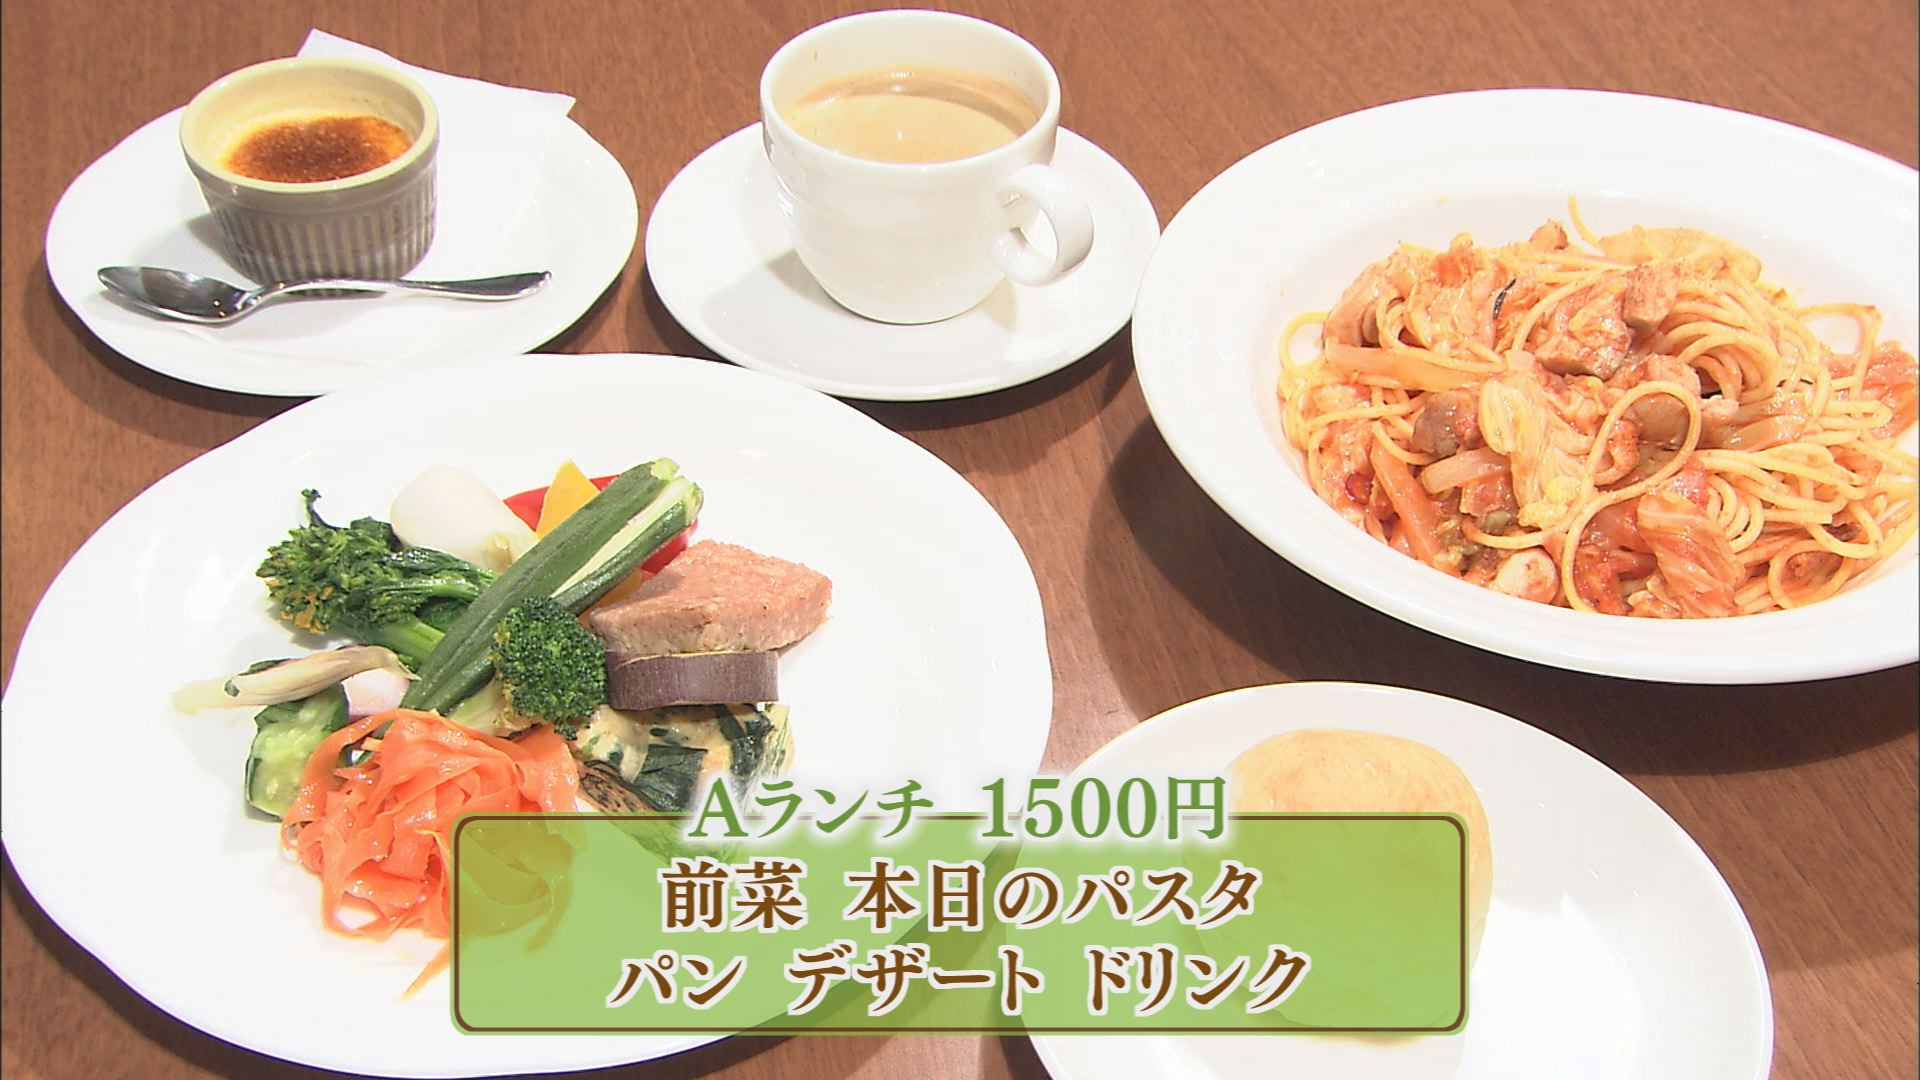 Aランチ 1500円